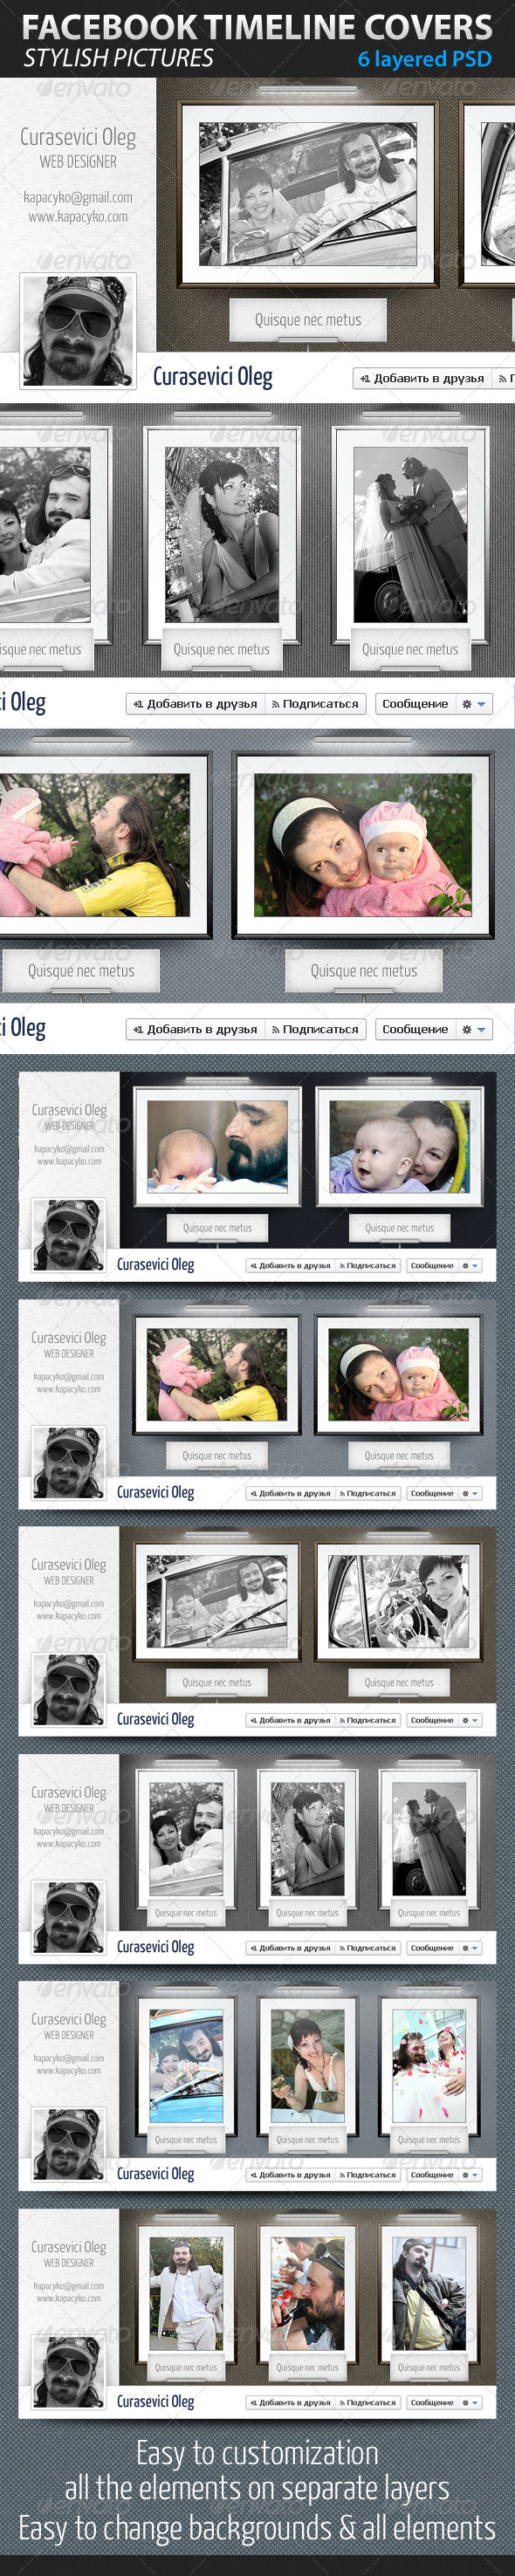 GraphicRiver Facebook Timeline Covers Stylish Pictures 1530096